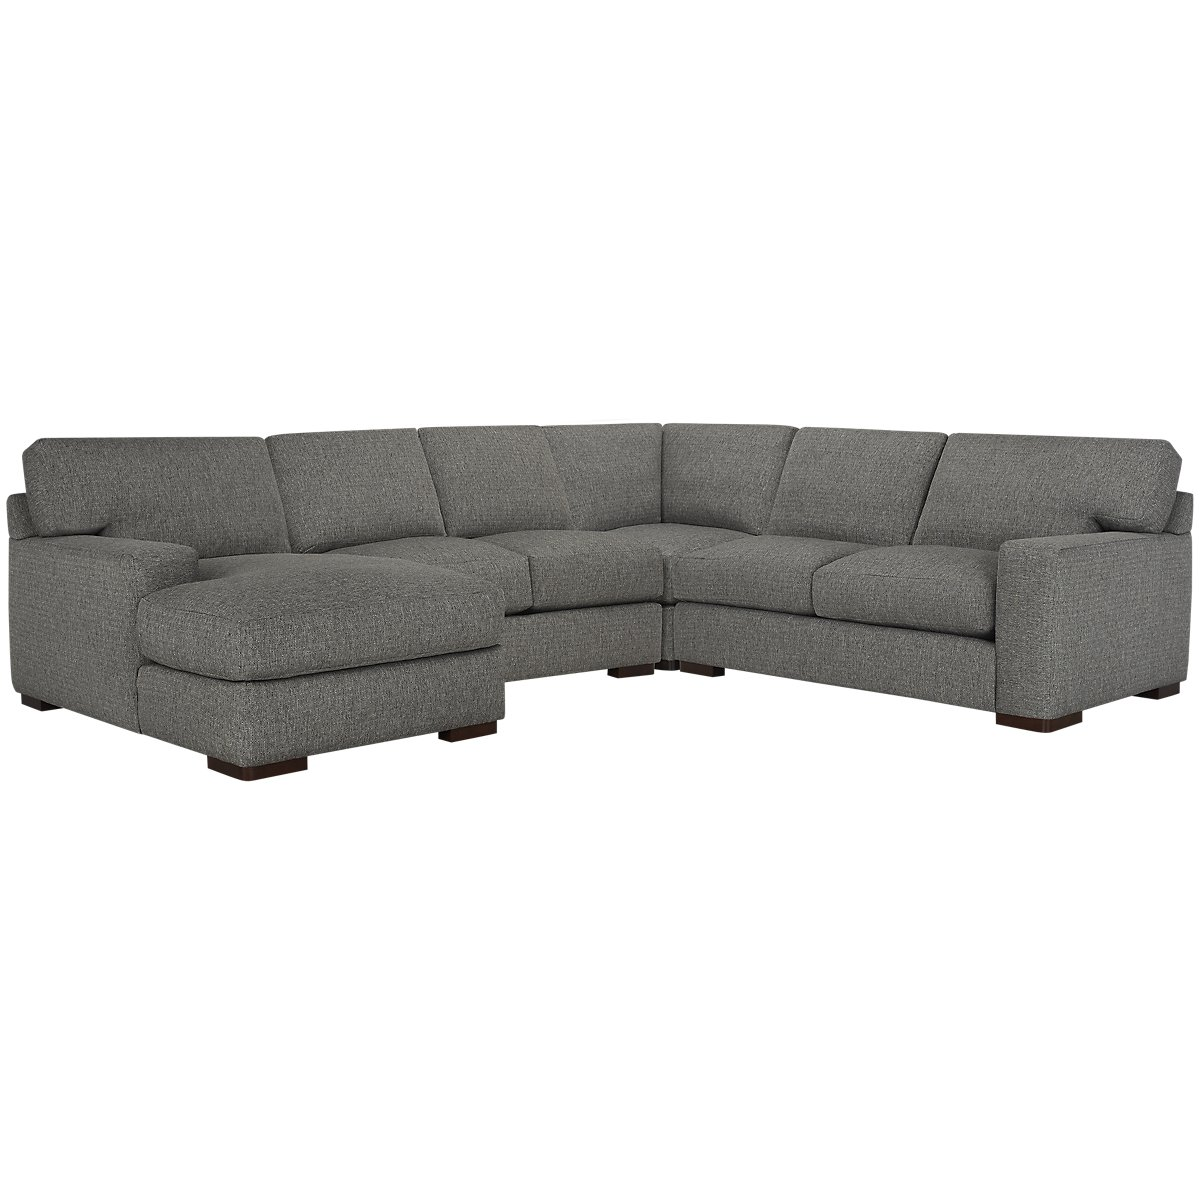 Veronica Gray Fabric Medium Left Chaise Sectional